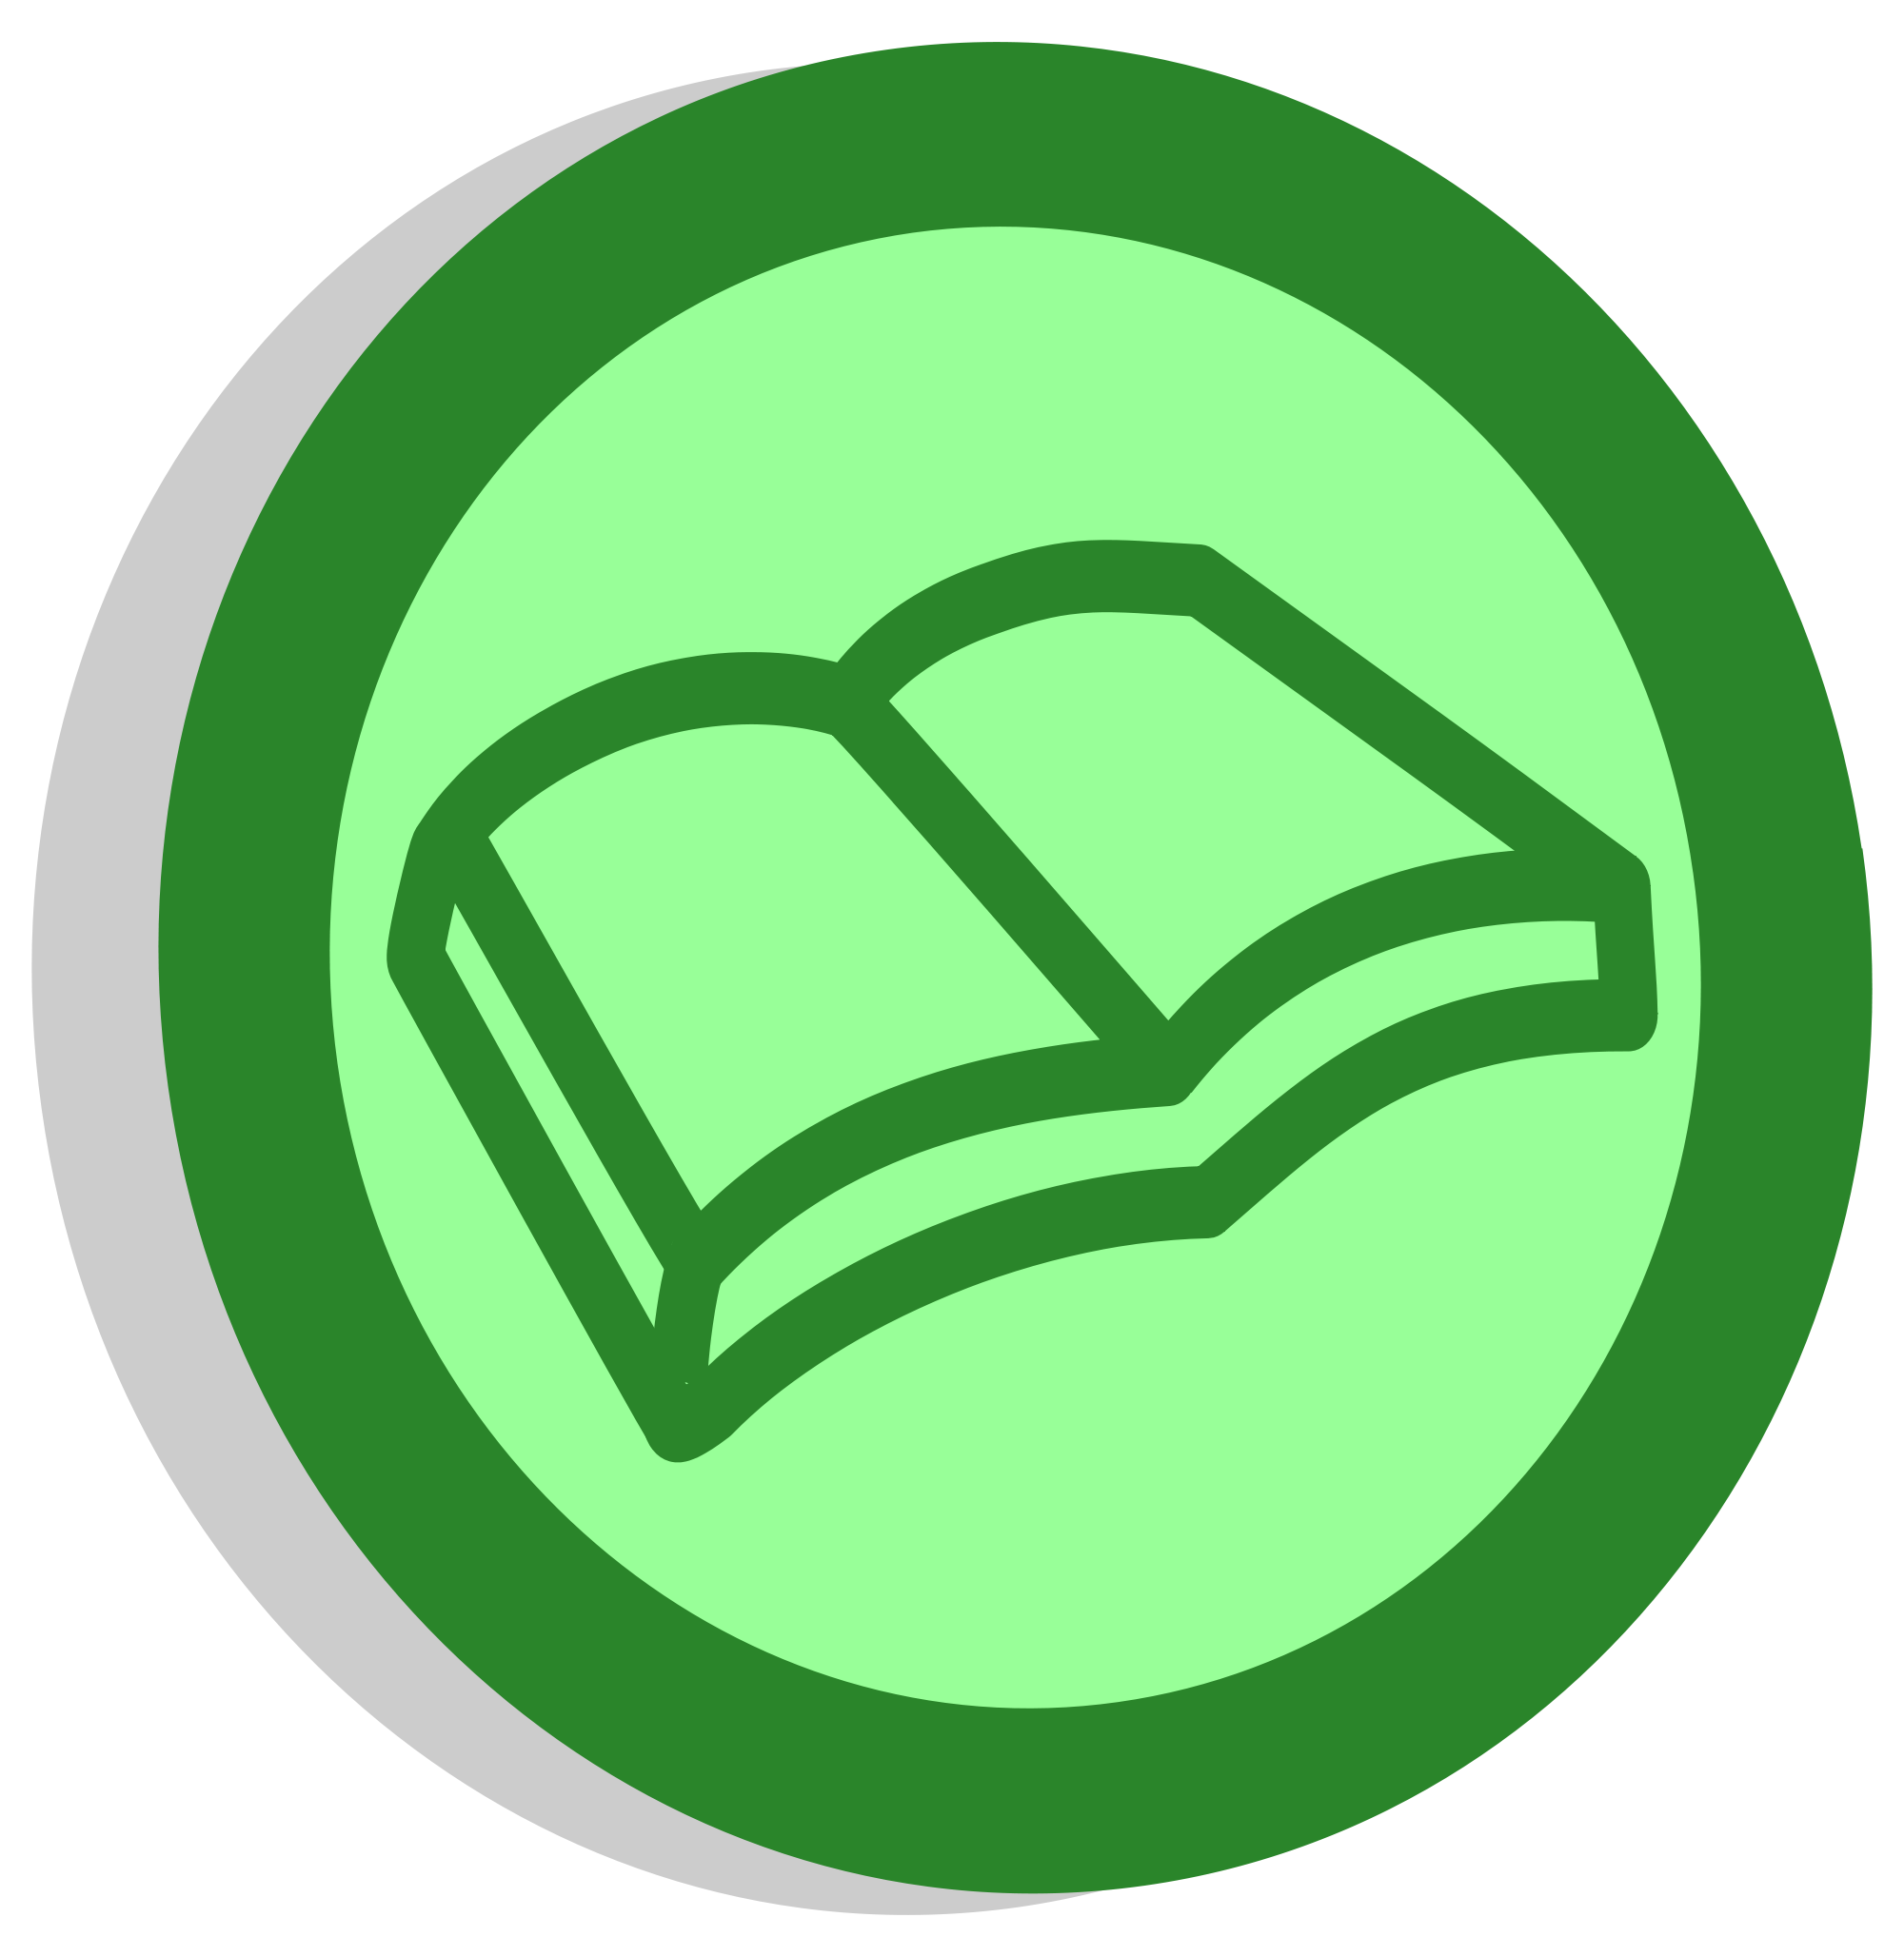 D20 svg green. Pages reading pxsymbolbookclasssvgpng